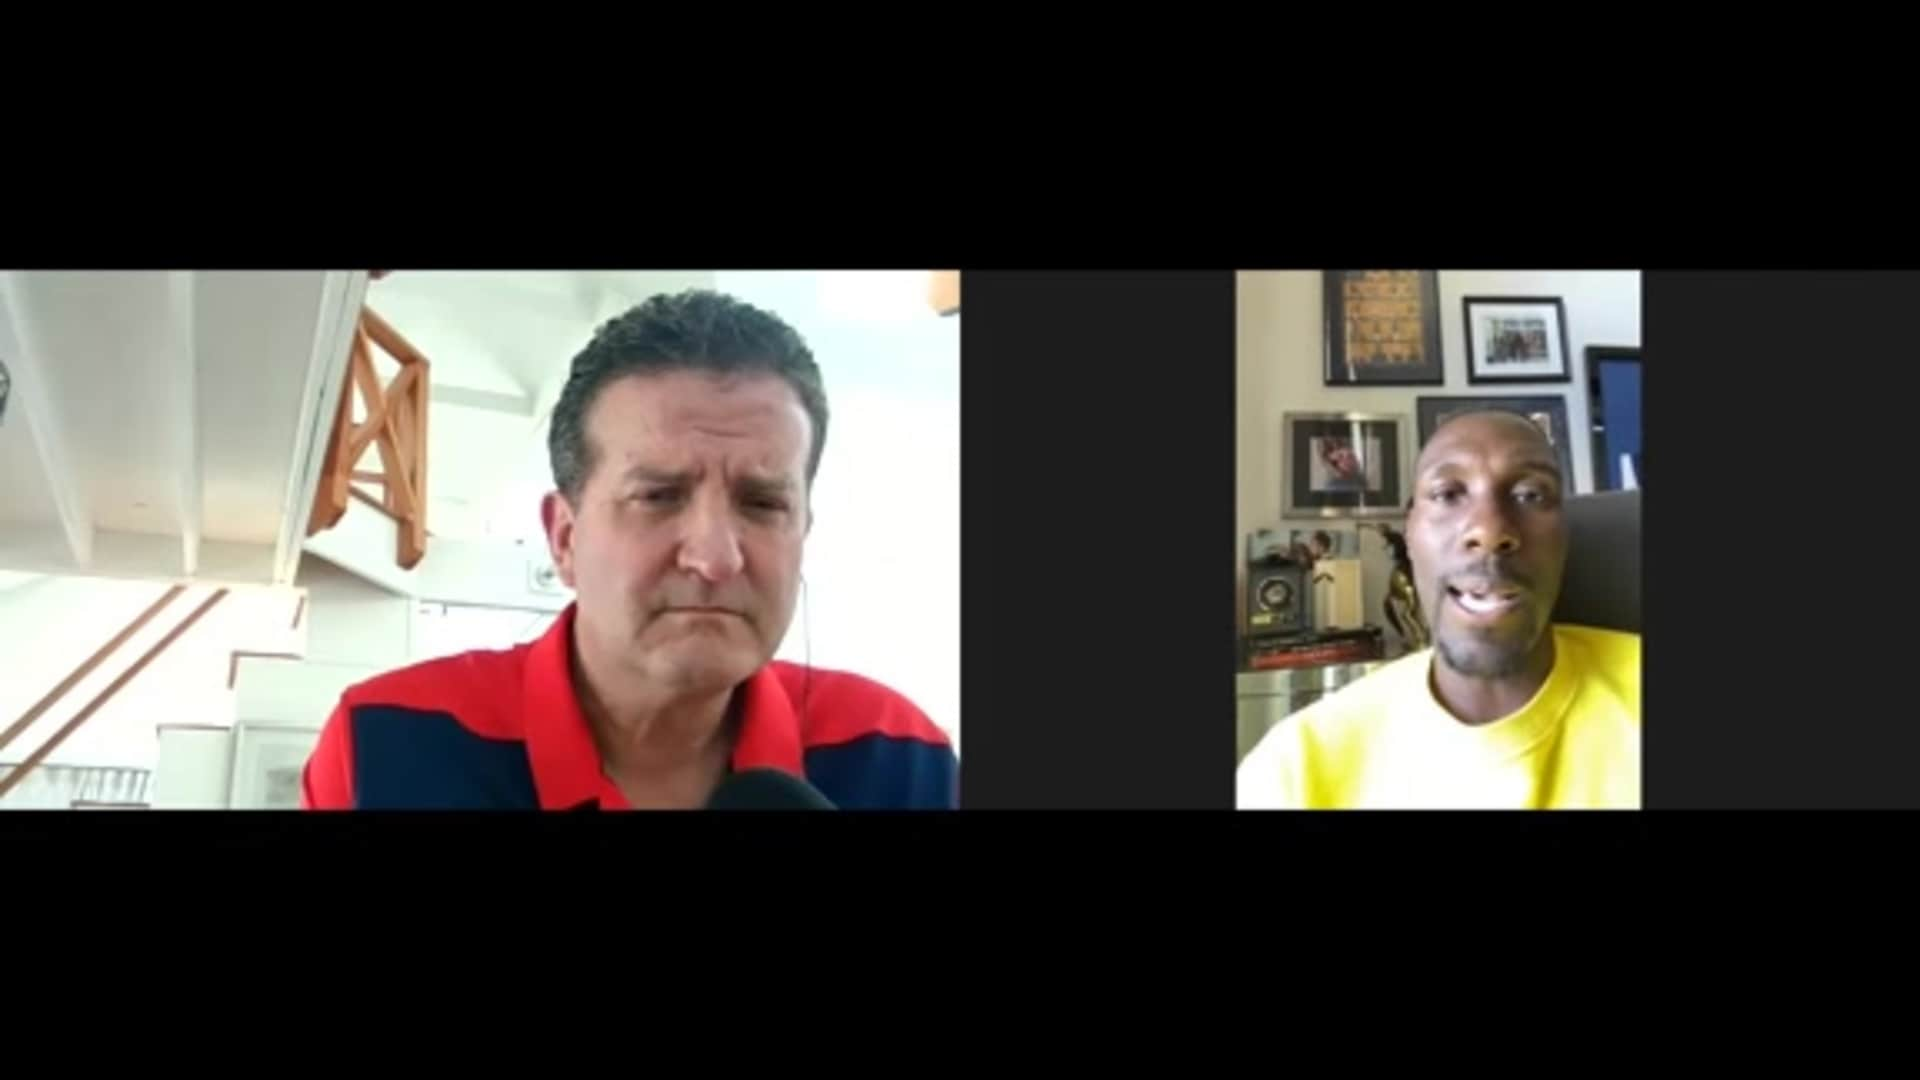 Ian Mahinmi on Black Lives Matter, Police Brutality